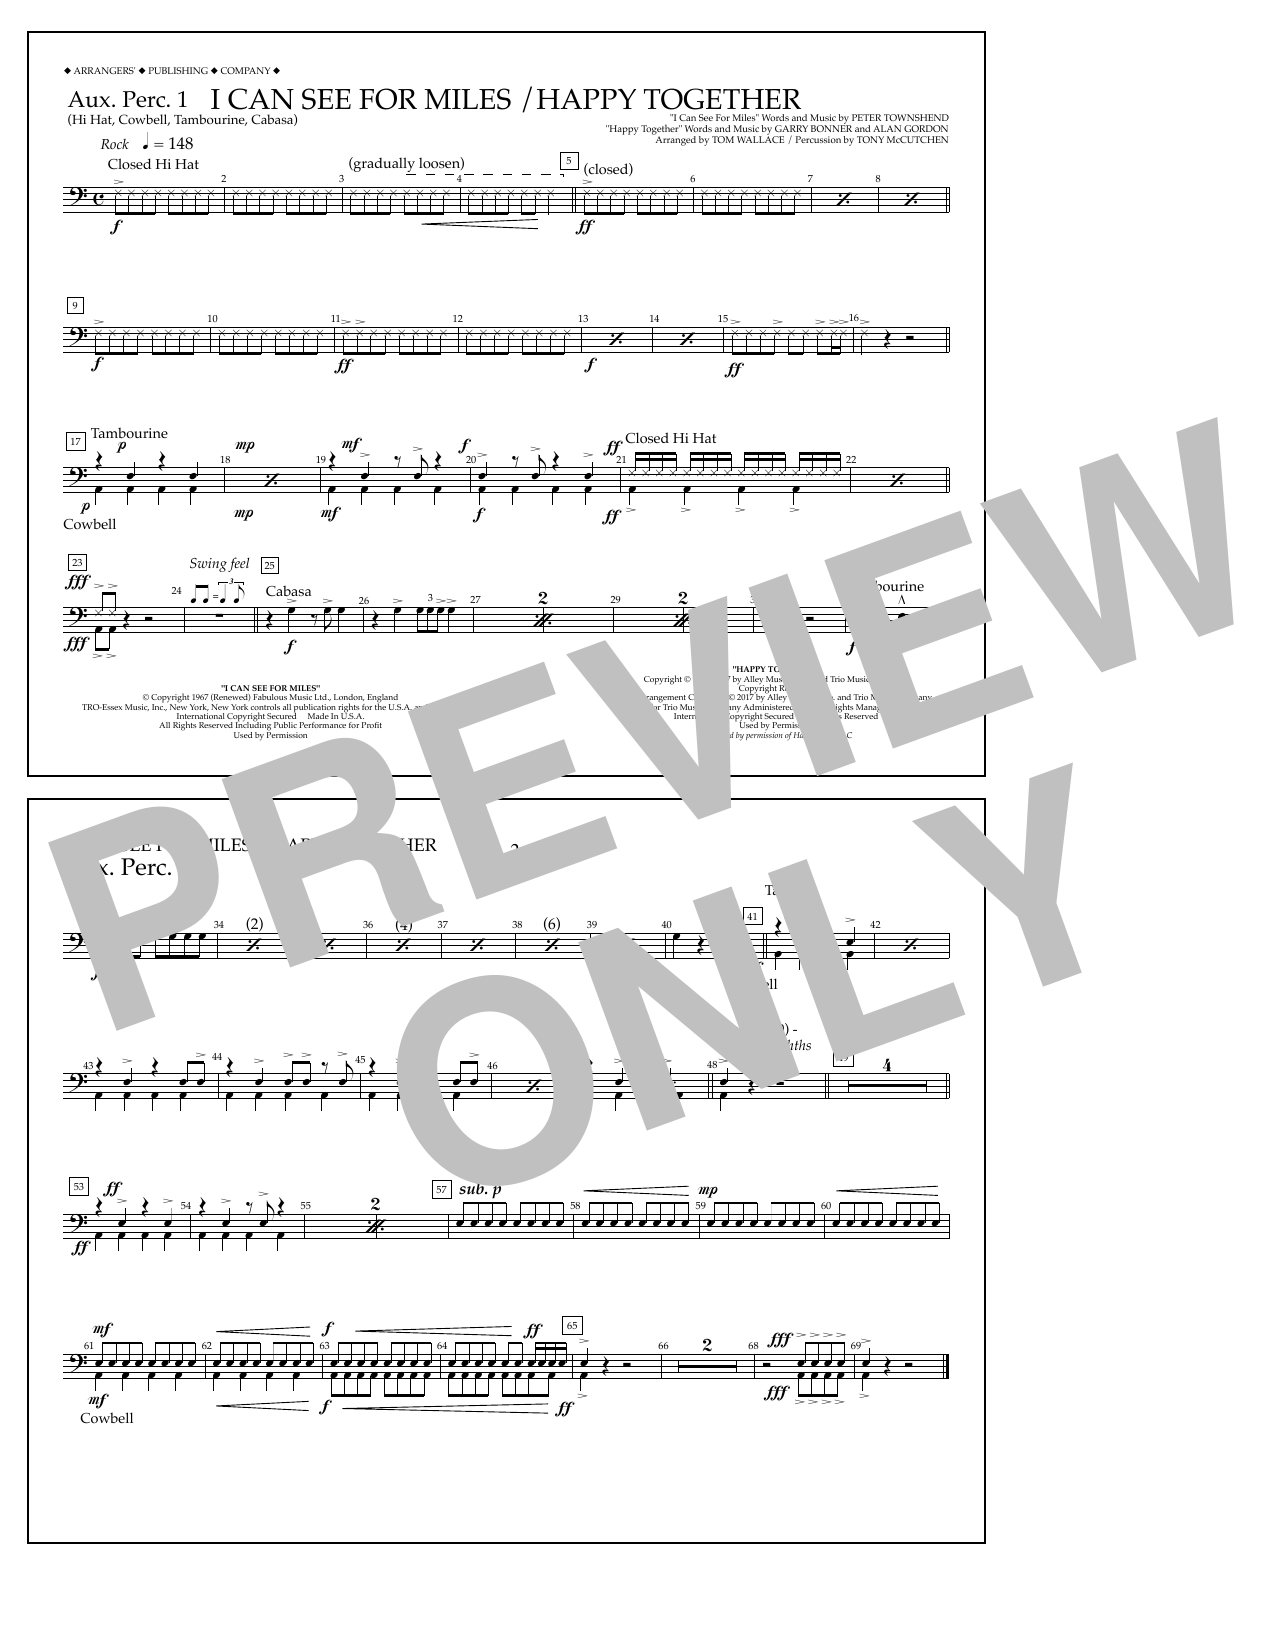 I Can See for Miles/Happy Together - Aux. Perc. 1 Sheet Music